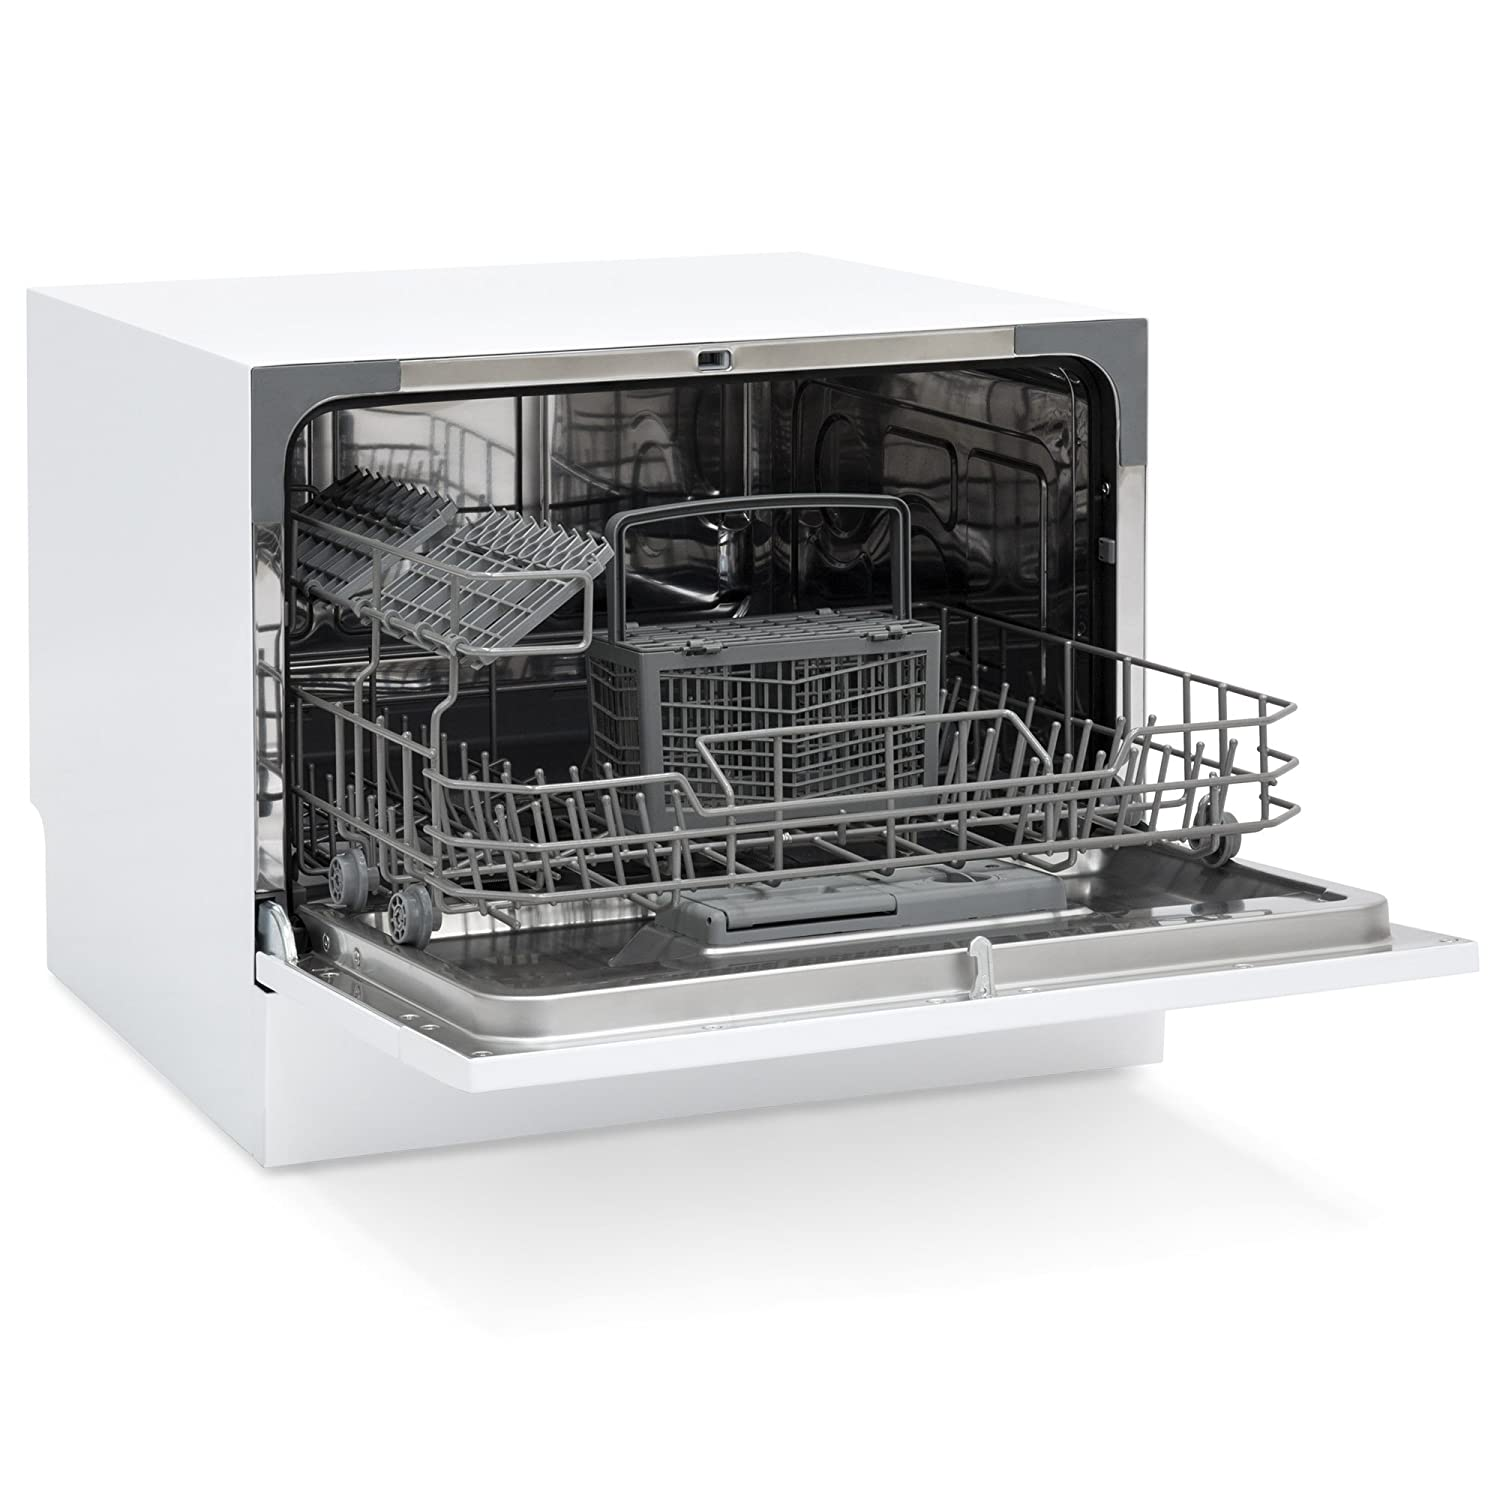 Amazon.com: Best Choice Products Small Spaces Kitchen Countertop ...